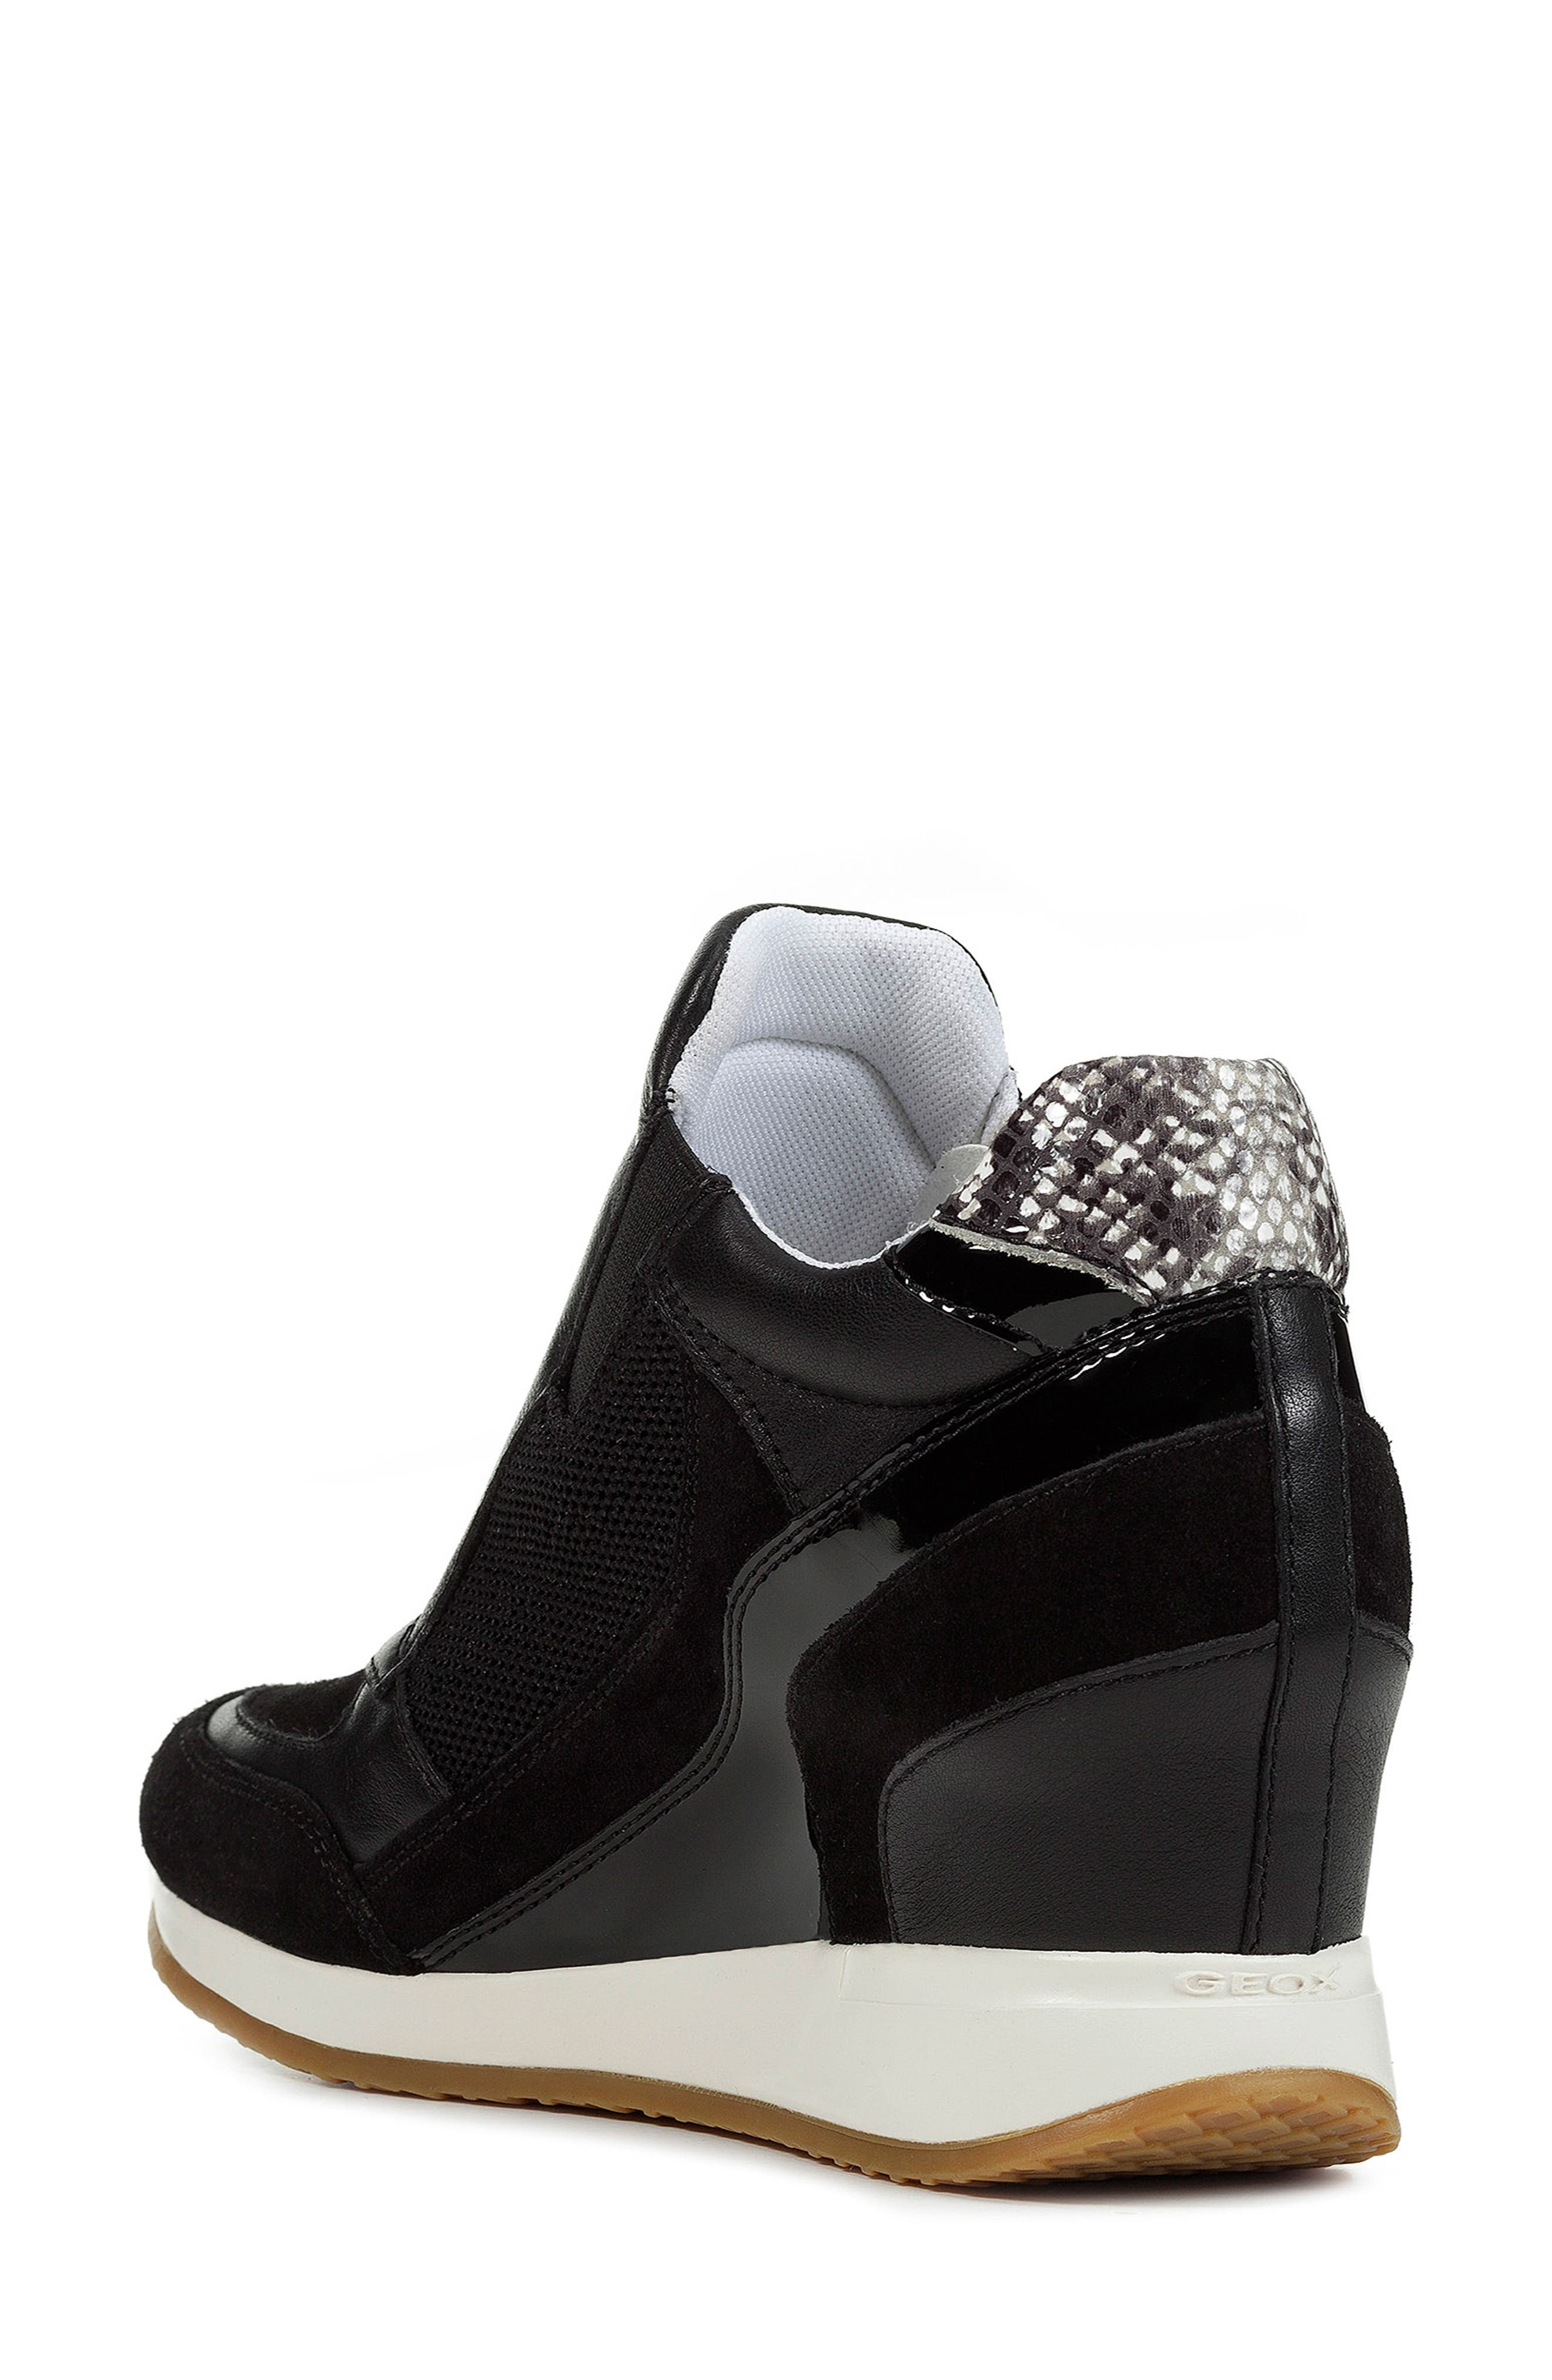 Nydame Wedge Sneaker,                             Alternate thumbnail 2, color,                             BLACK/ BLACK LEATHER